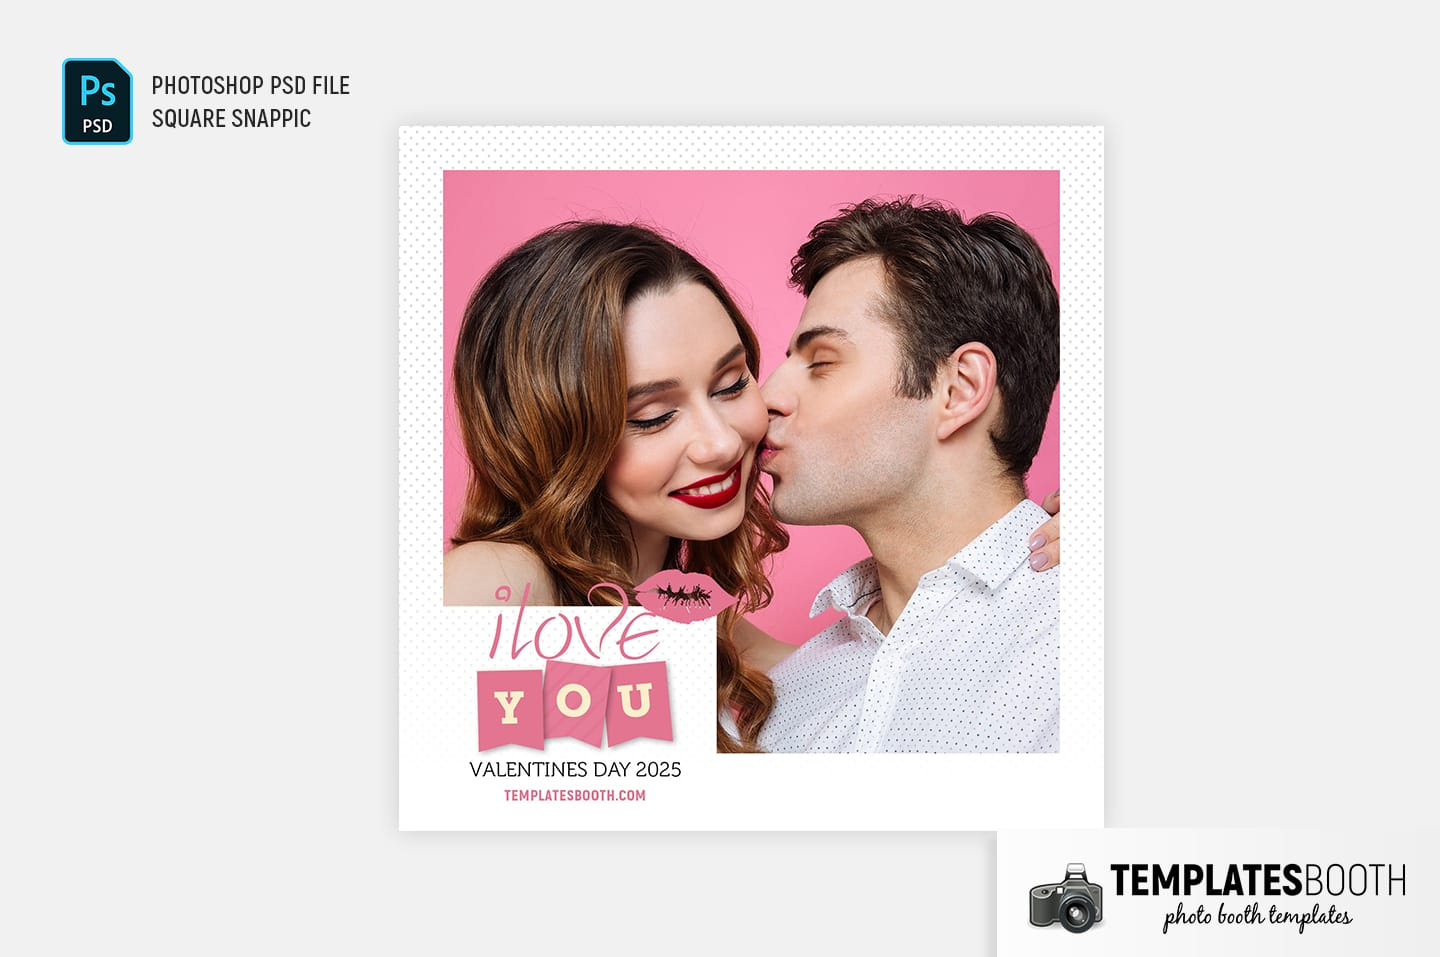 Valentines Kiss Photo Booth Template (snappic)